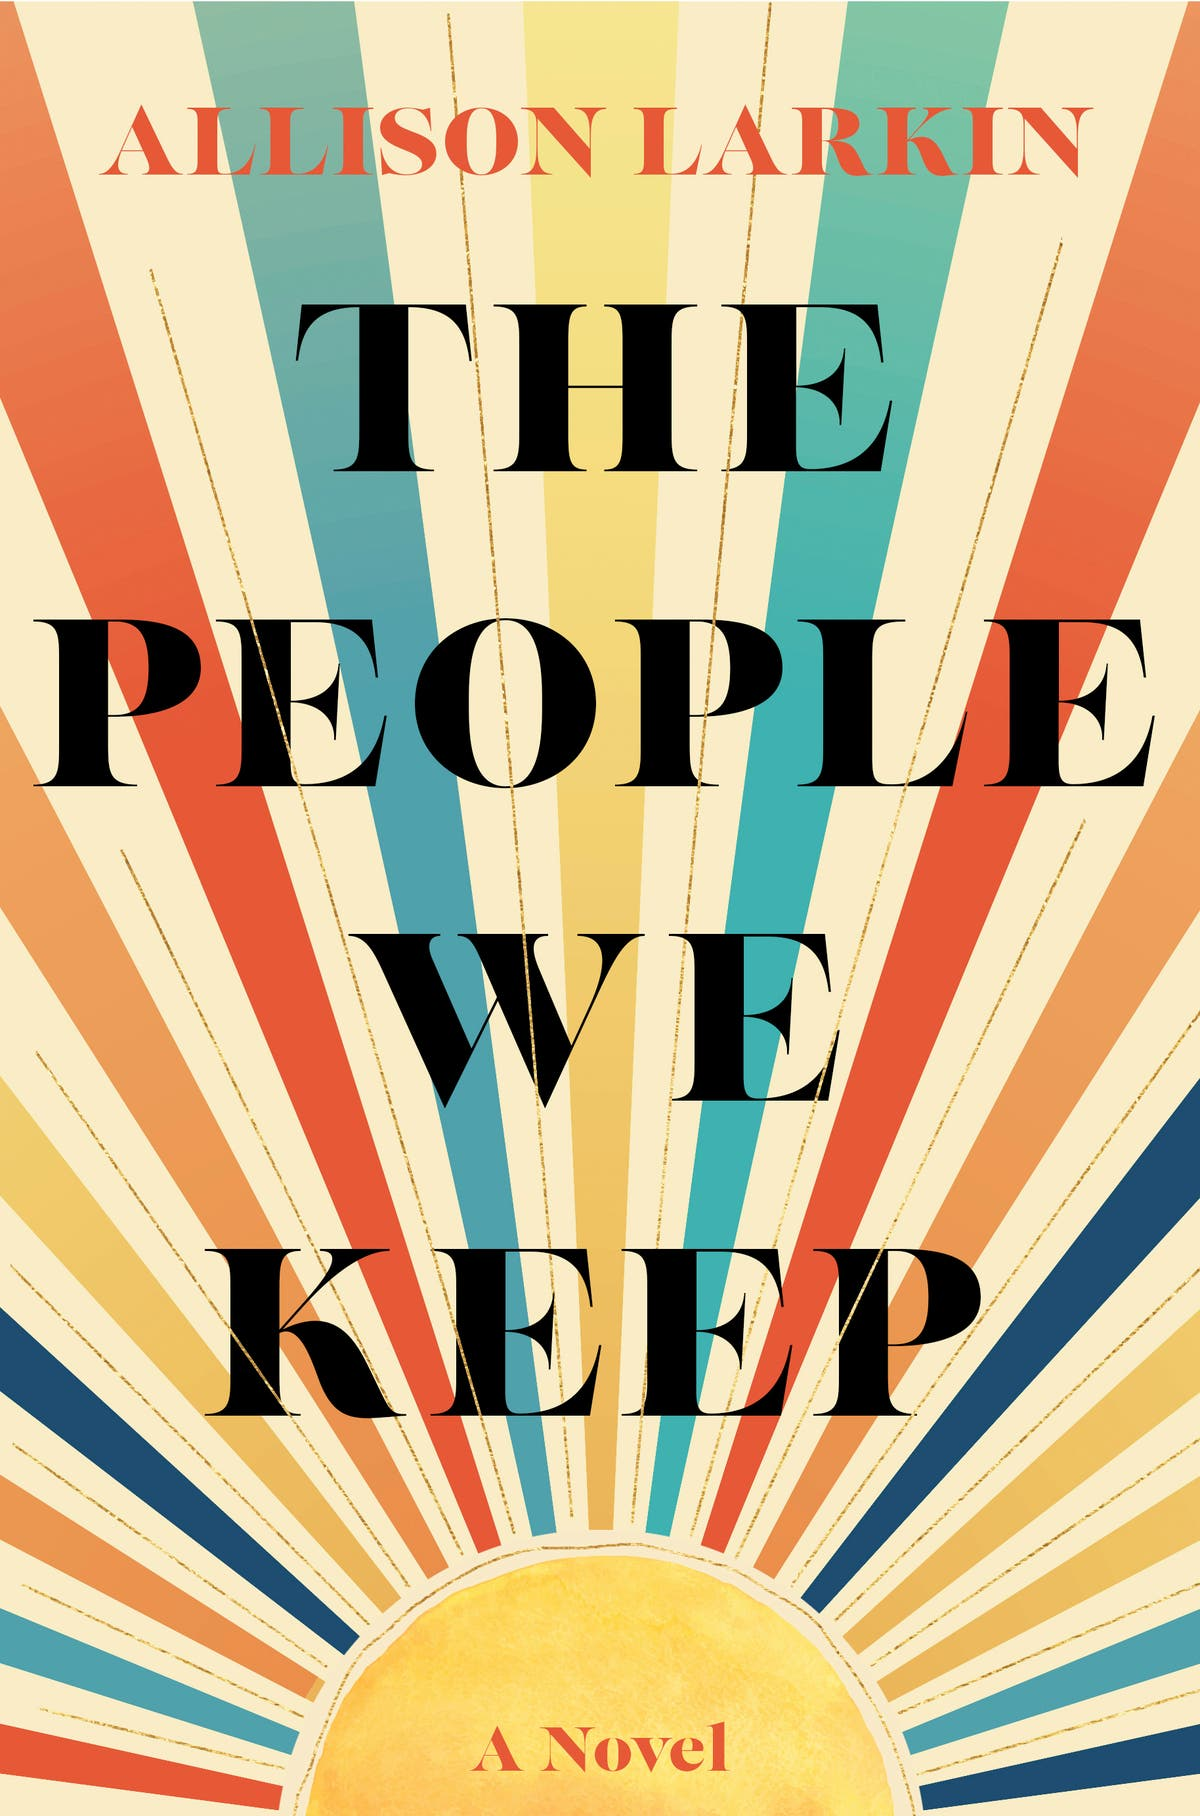 Resensie: 'The People We Keep' is a search for family, meaning